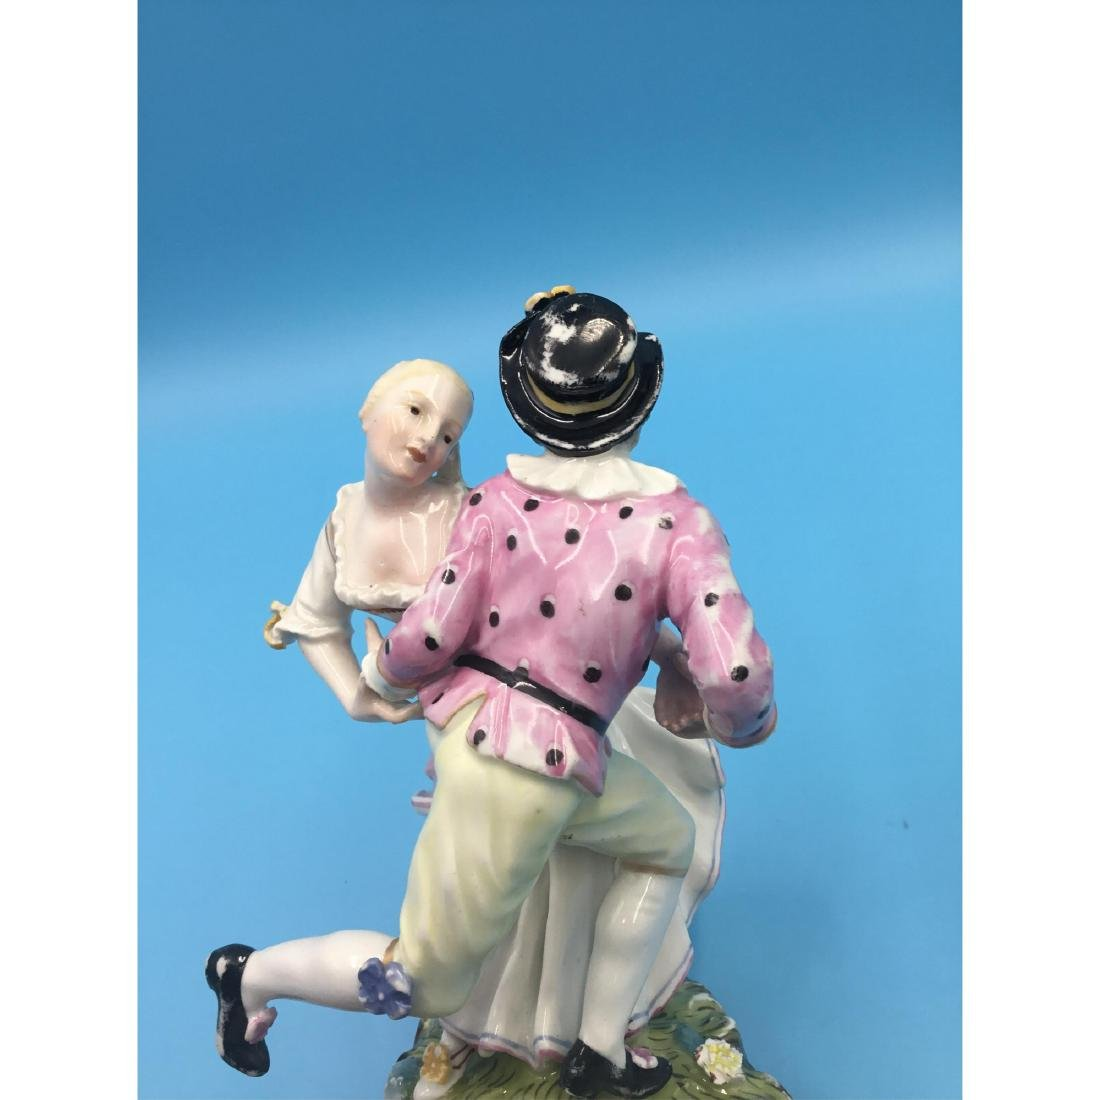 HOCHST 18TH C GERMAN PORCELAIN GROUP FIGURINE - 7